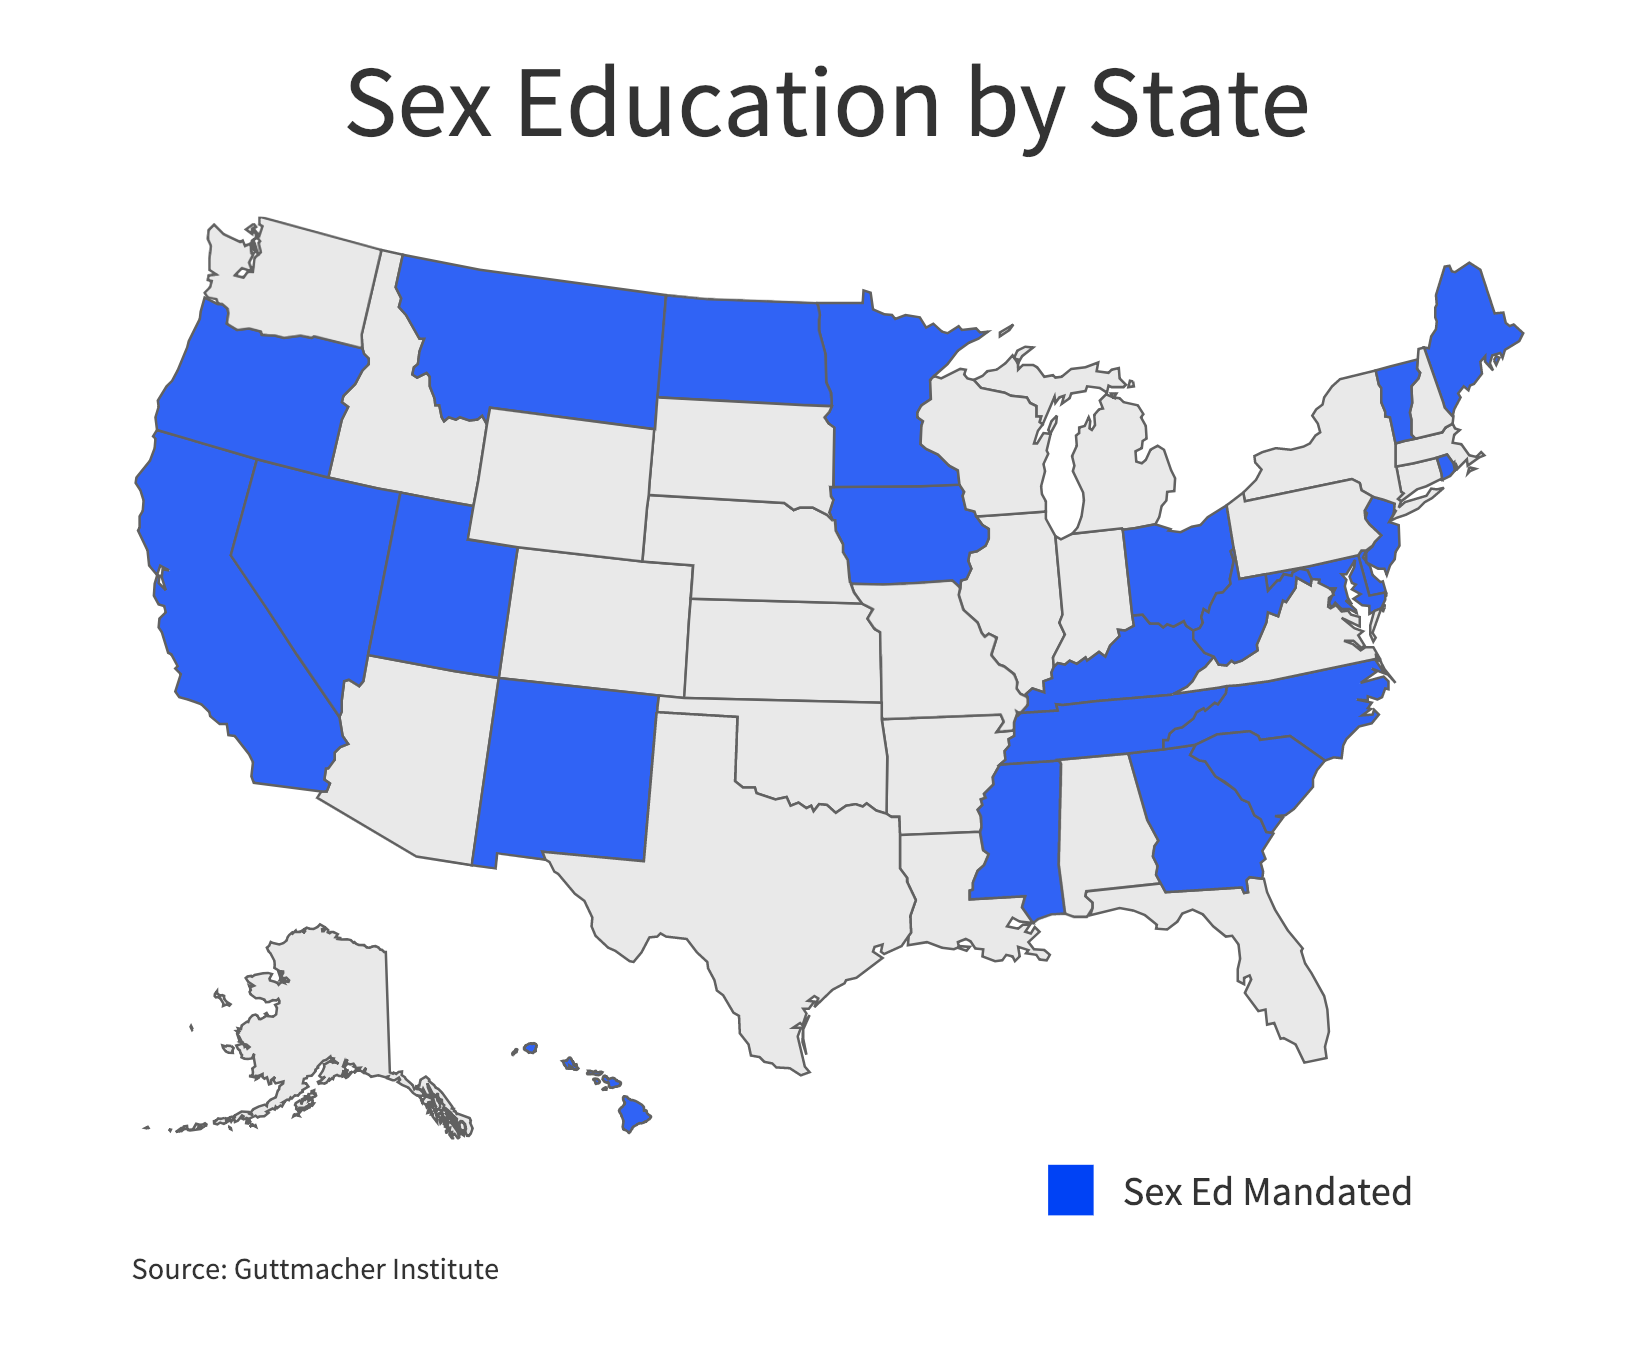 Twenty-four states and the District of Columbia mandate sexual education. (Charts by Ester Wells/MNS)